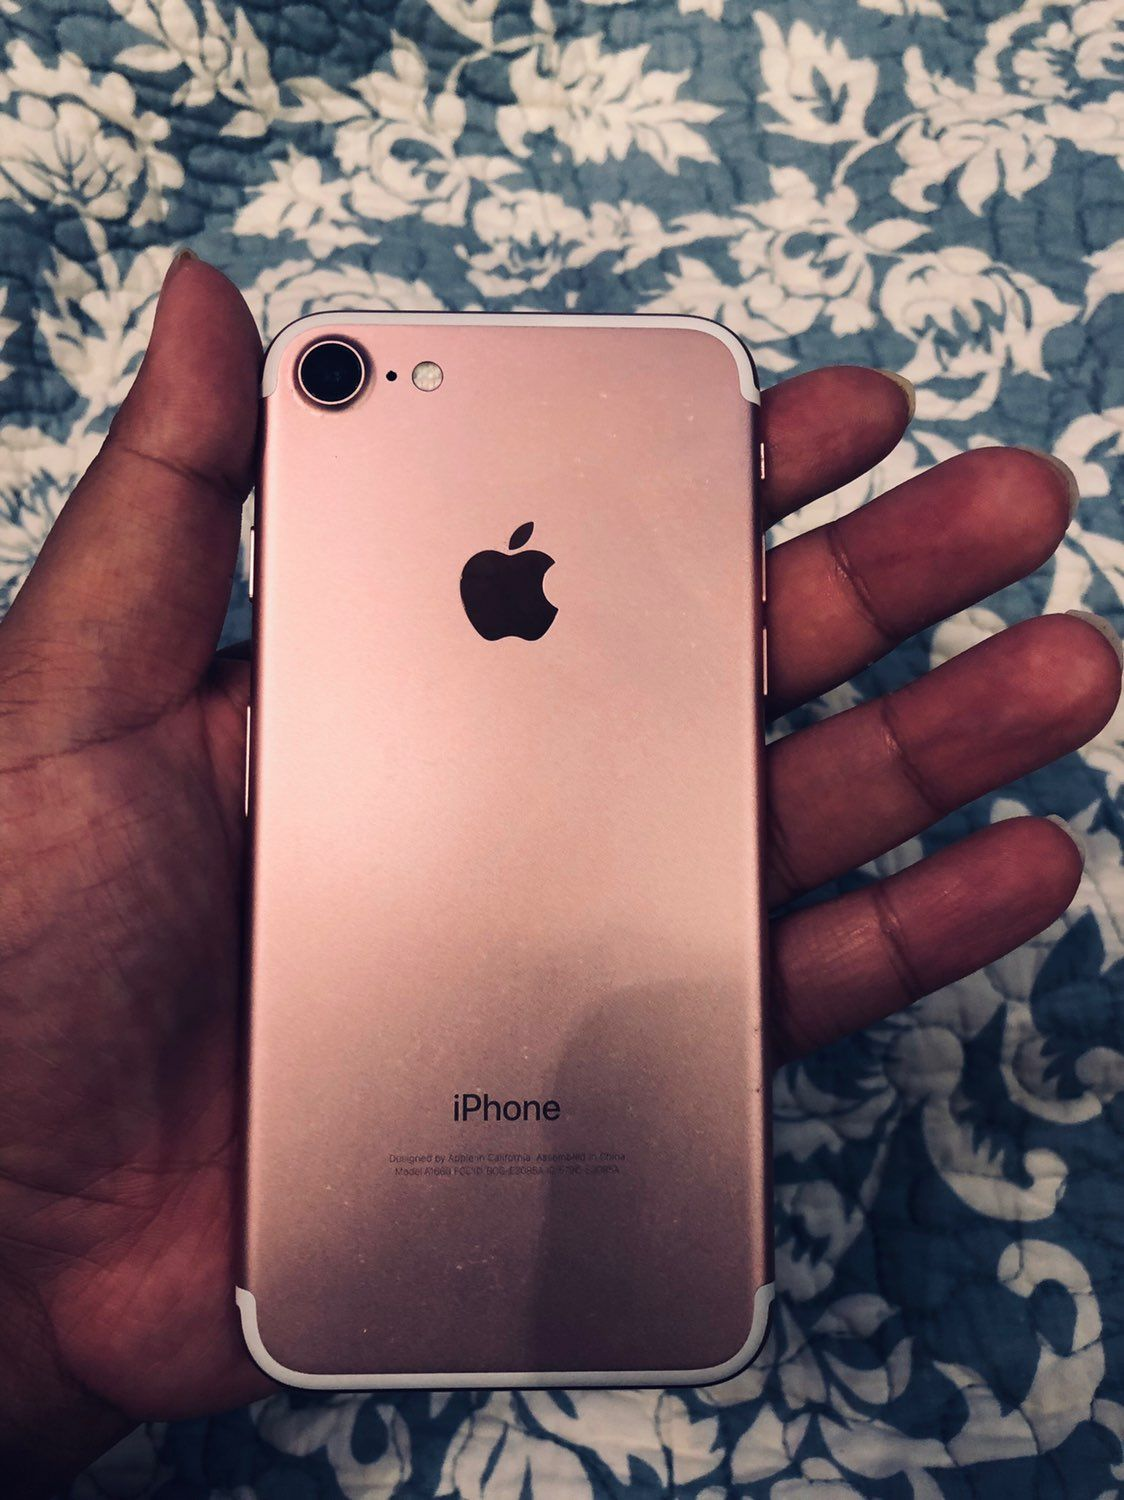 I Am Selling An Iphone 7 Rose Gold In Fairly Good Condition Clean Imei Clean Esn Find My Iphone Is Off And There Is No I Iphone Iphone 7 Iphone 7 Rose Gold